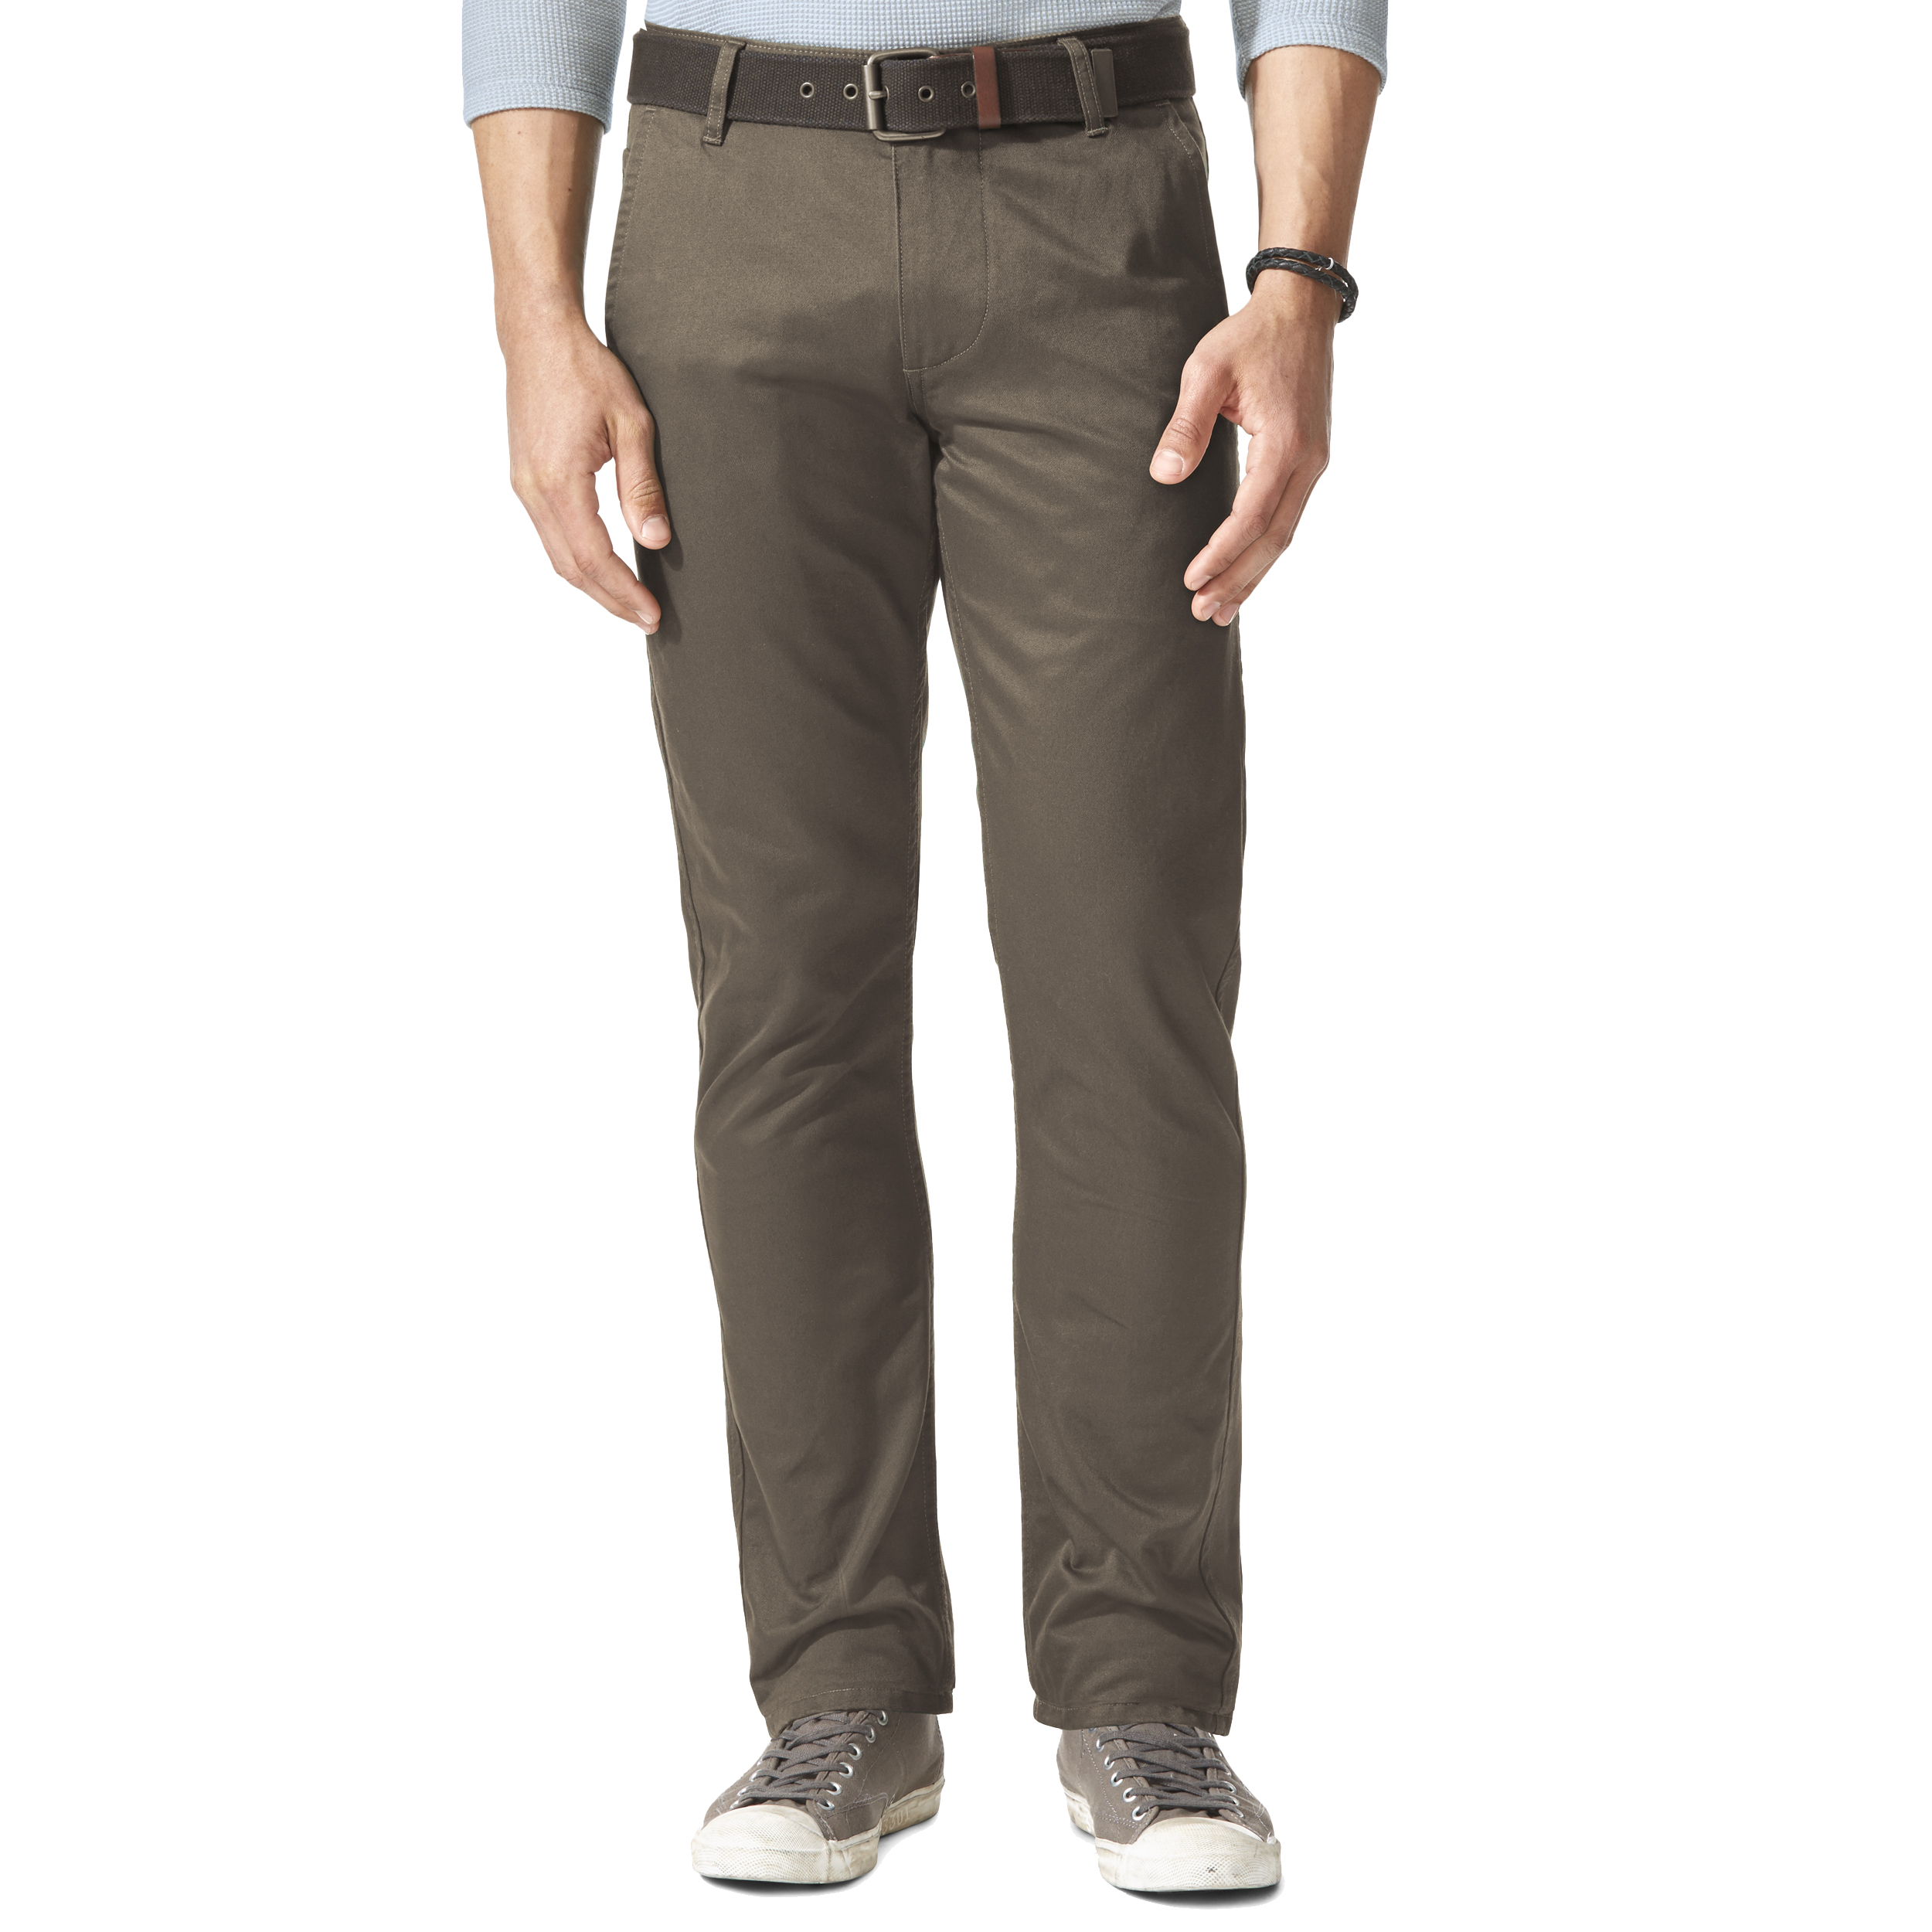 Pantalon alpha khaki original slim tapered  en twill taupe